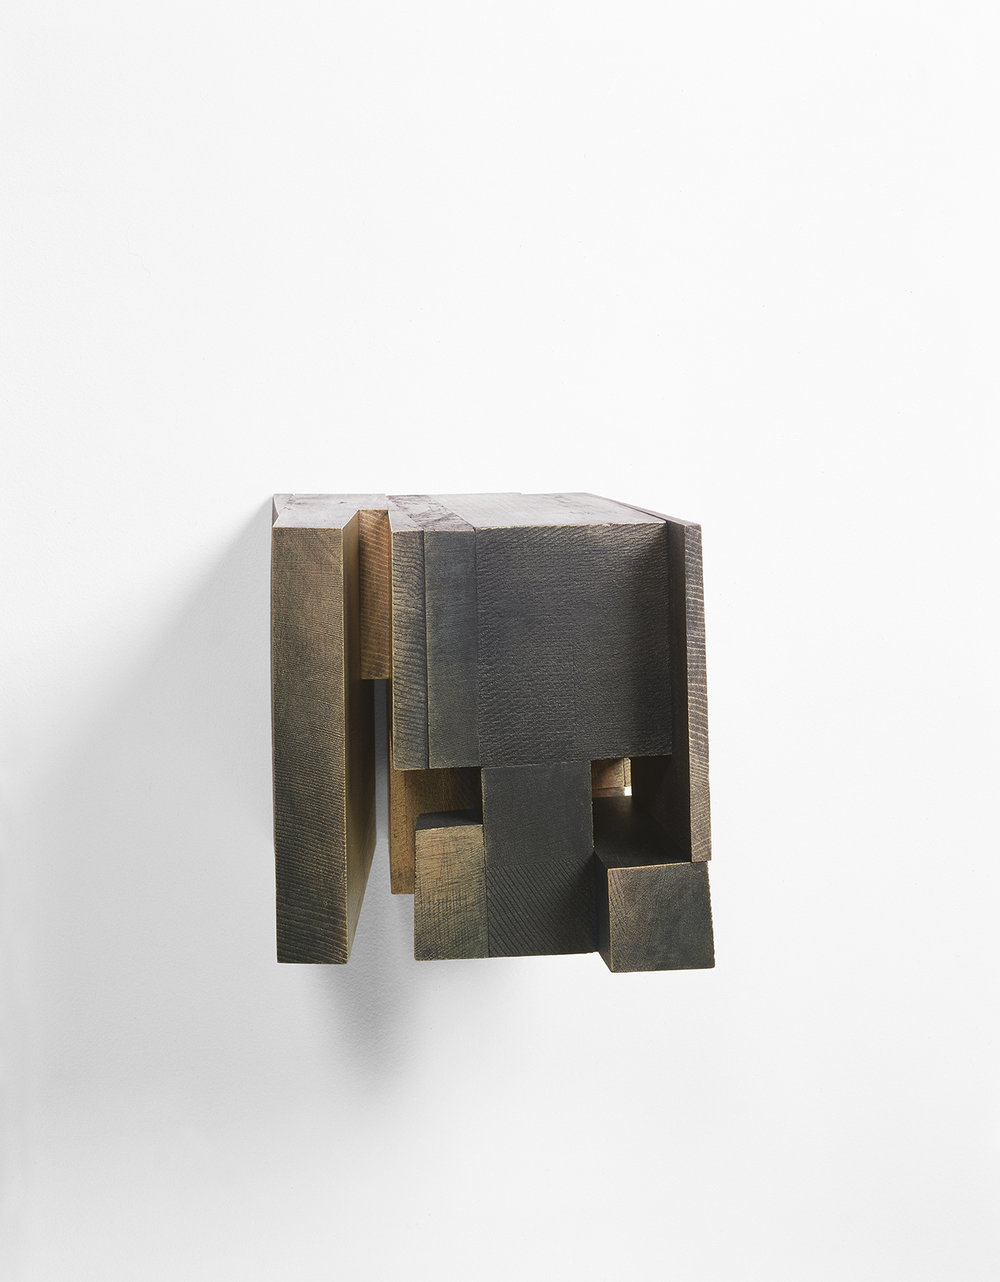 Demeure VII ( 2002)   Bois polychrome, 19.5 x 19 x 23.5 cm, collection de l'artiste. photo : Richard-Max Tremblay